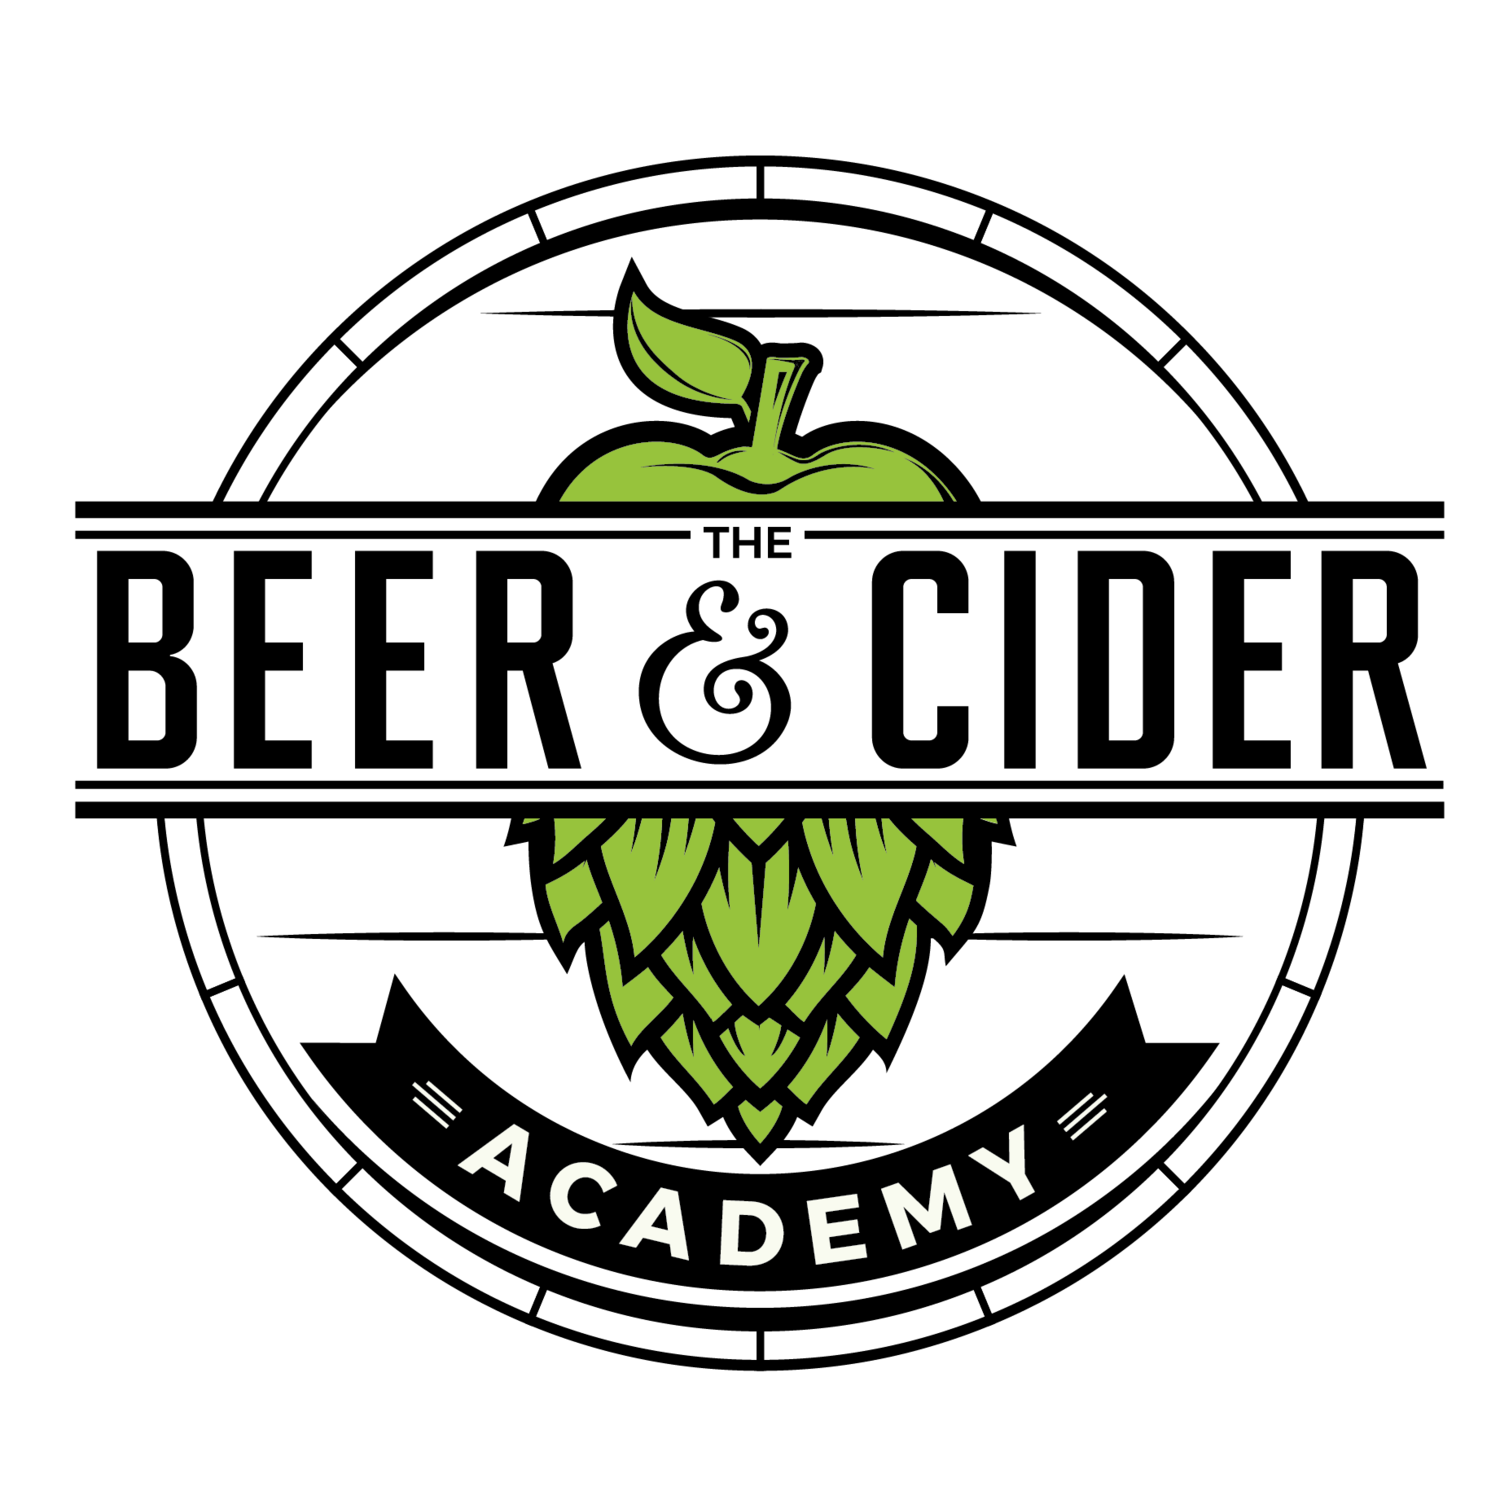 The Beer & Cider Academy